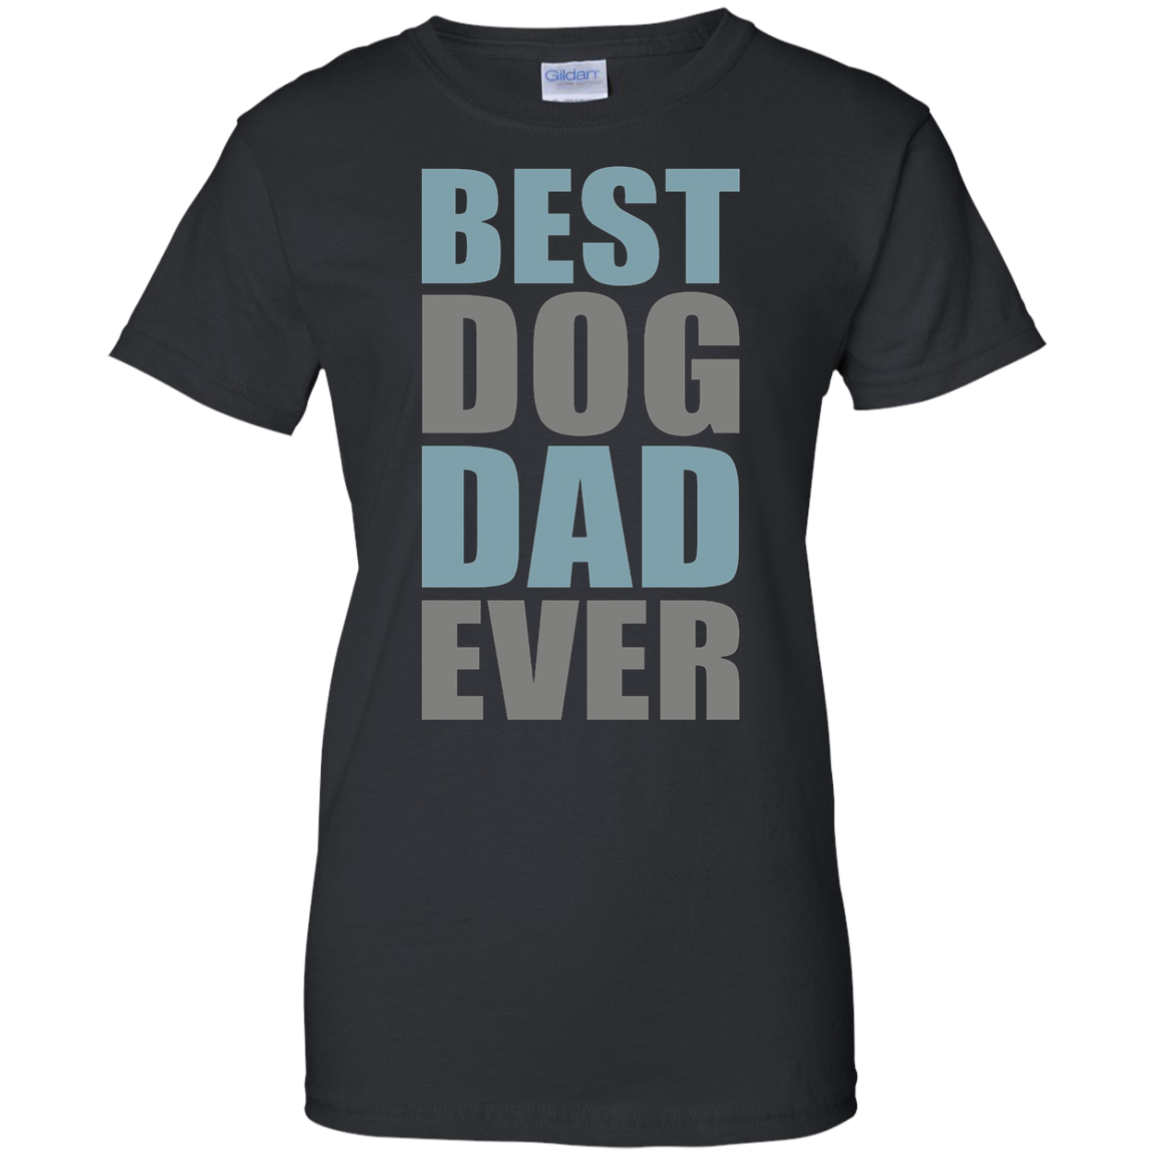 Best Dog Dad Ever T-Shirt, Gift for Dad, Worlds Best Dad